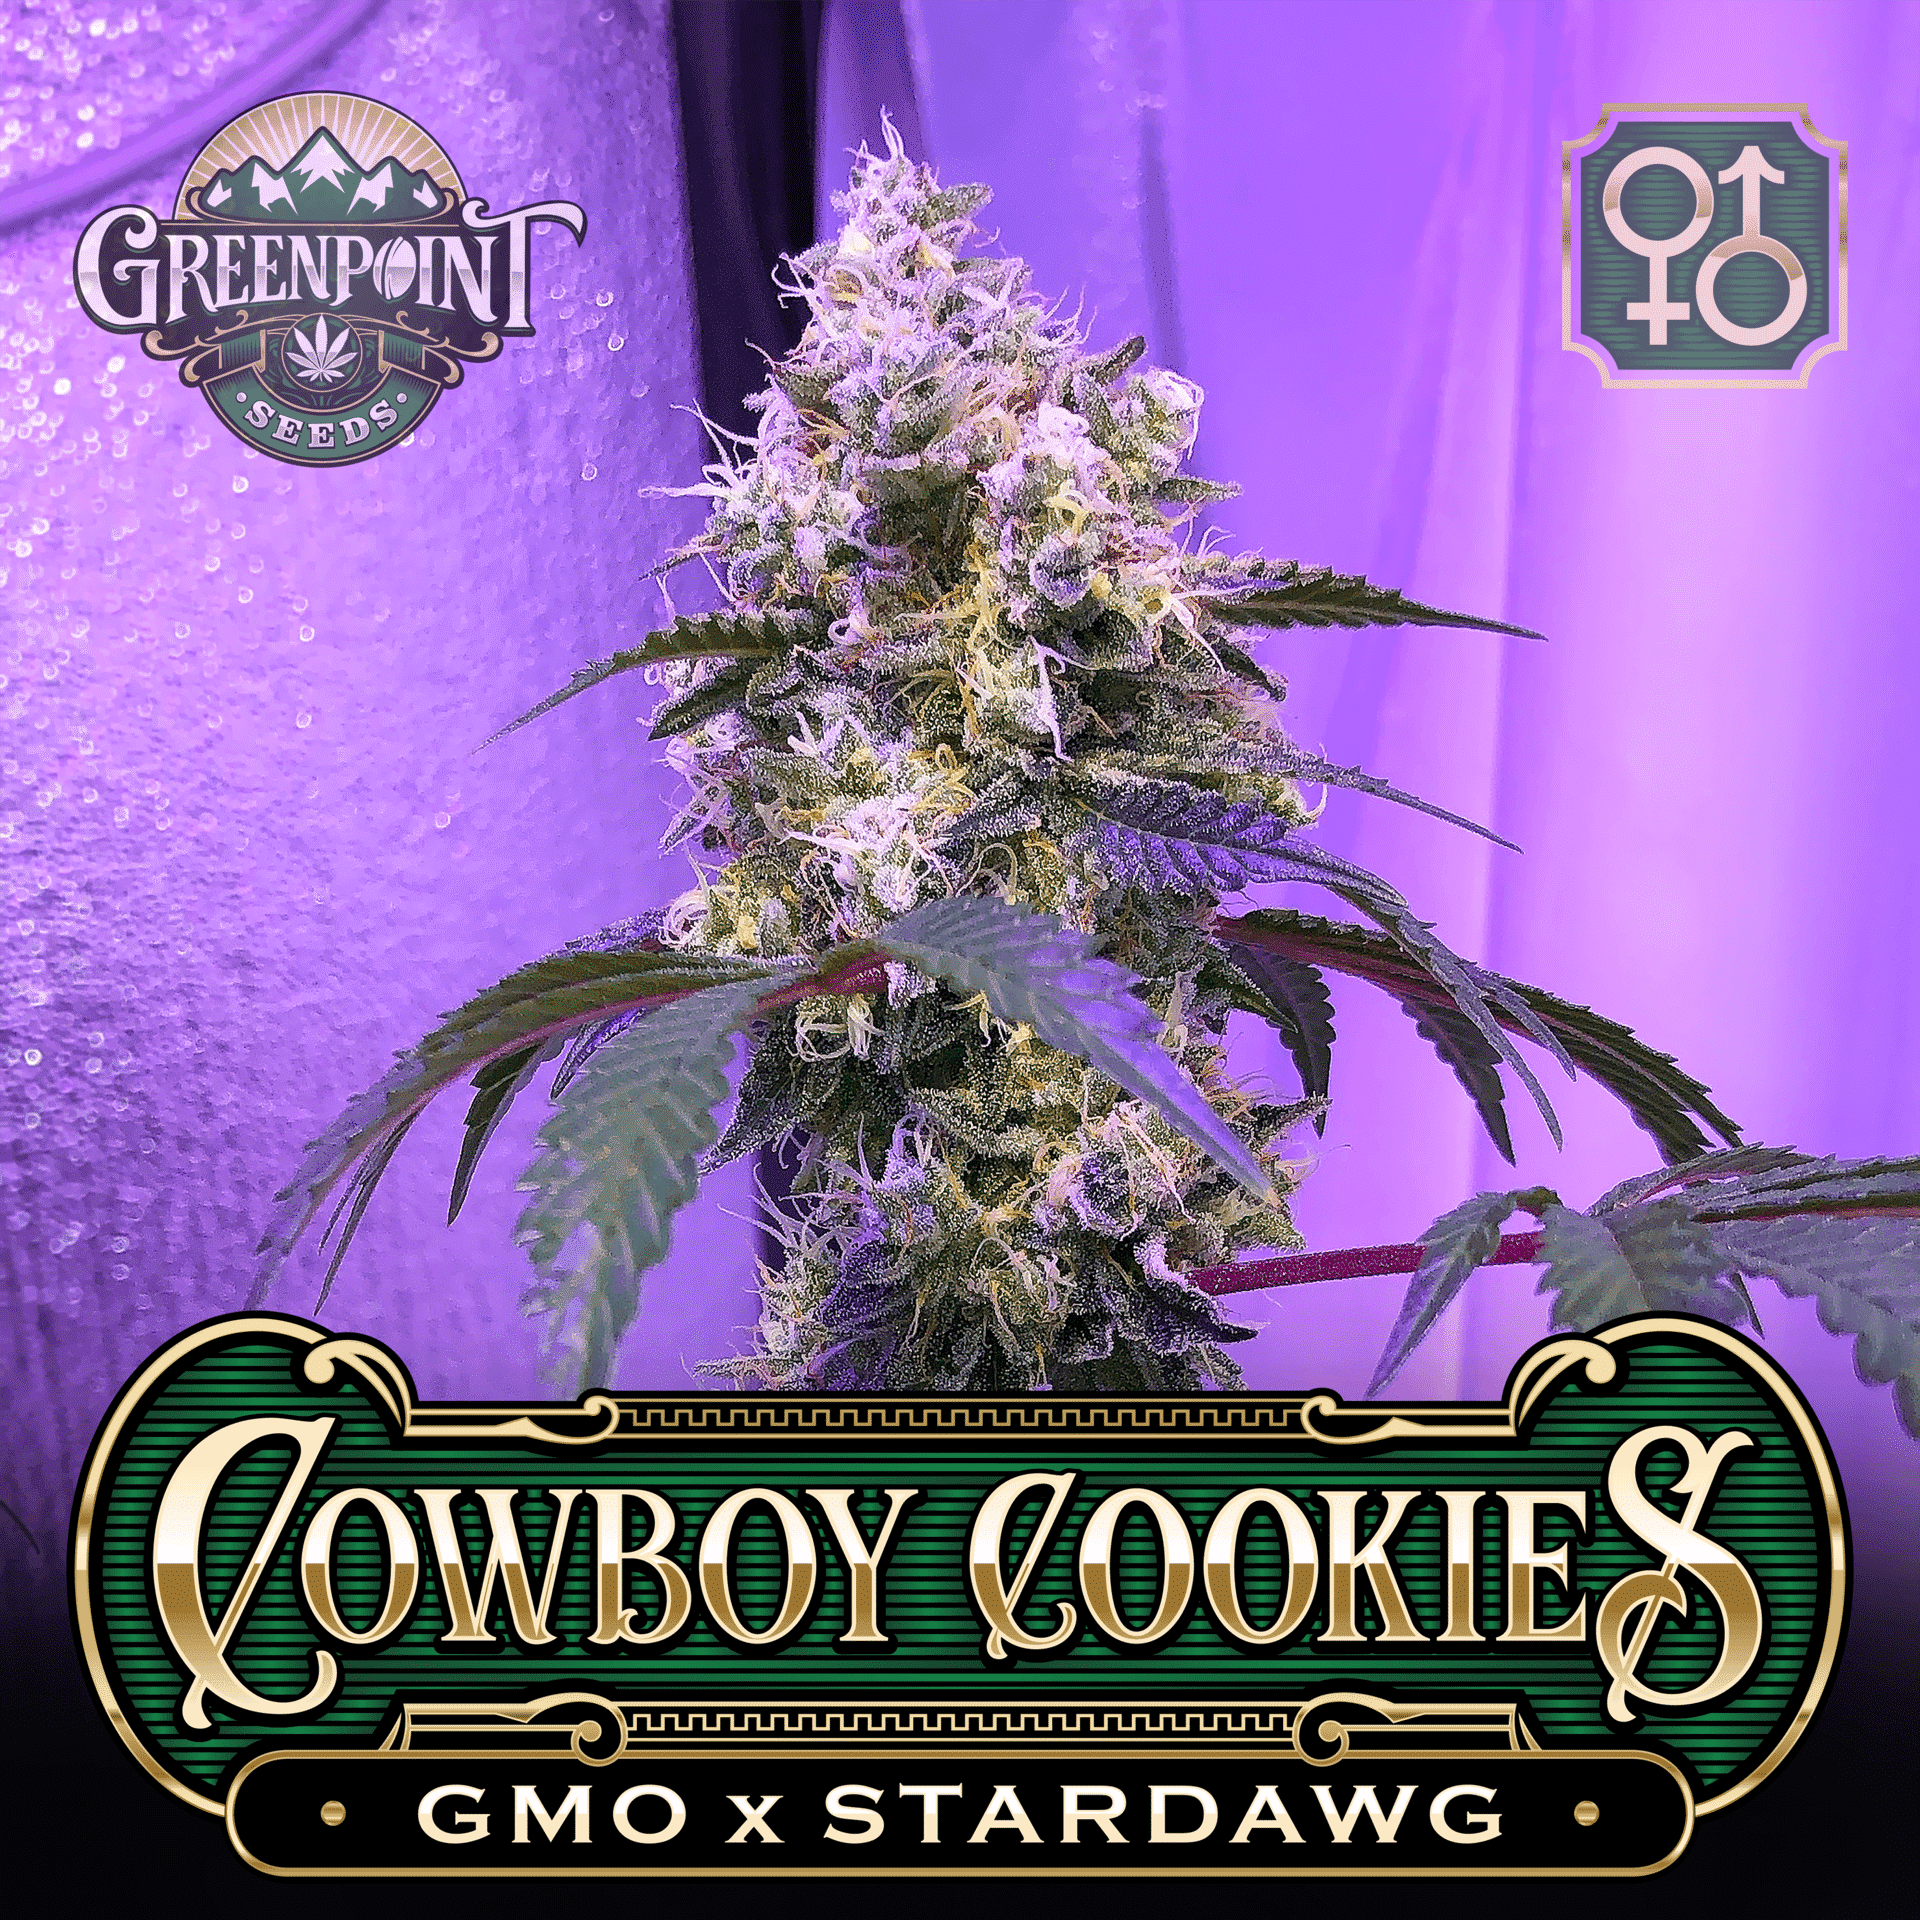 Cowboy Cookies Seeds - GMO x Star Dawg Strain | Greenpoint Seeds